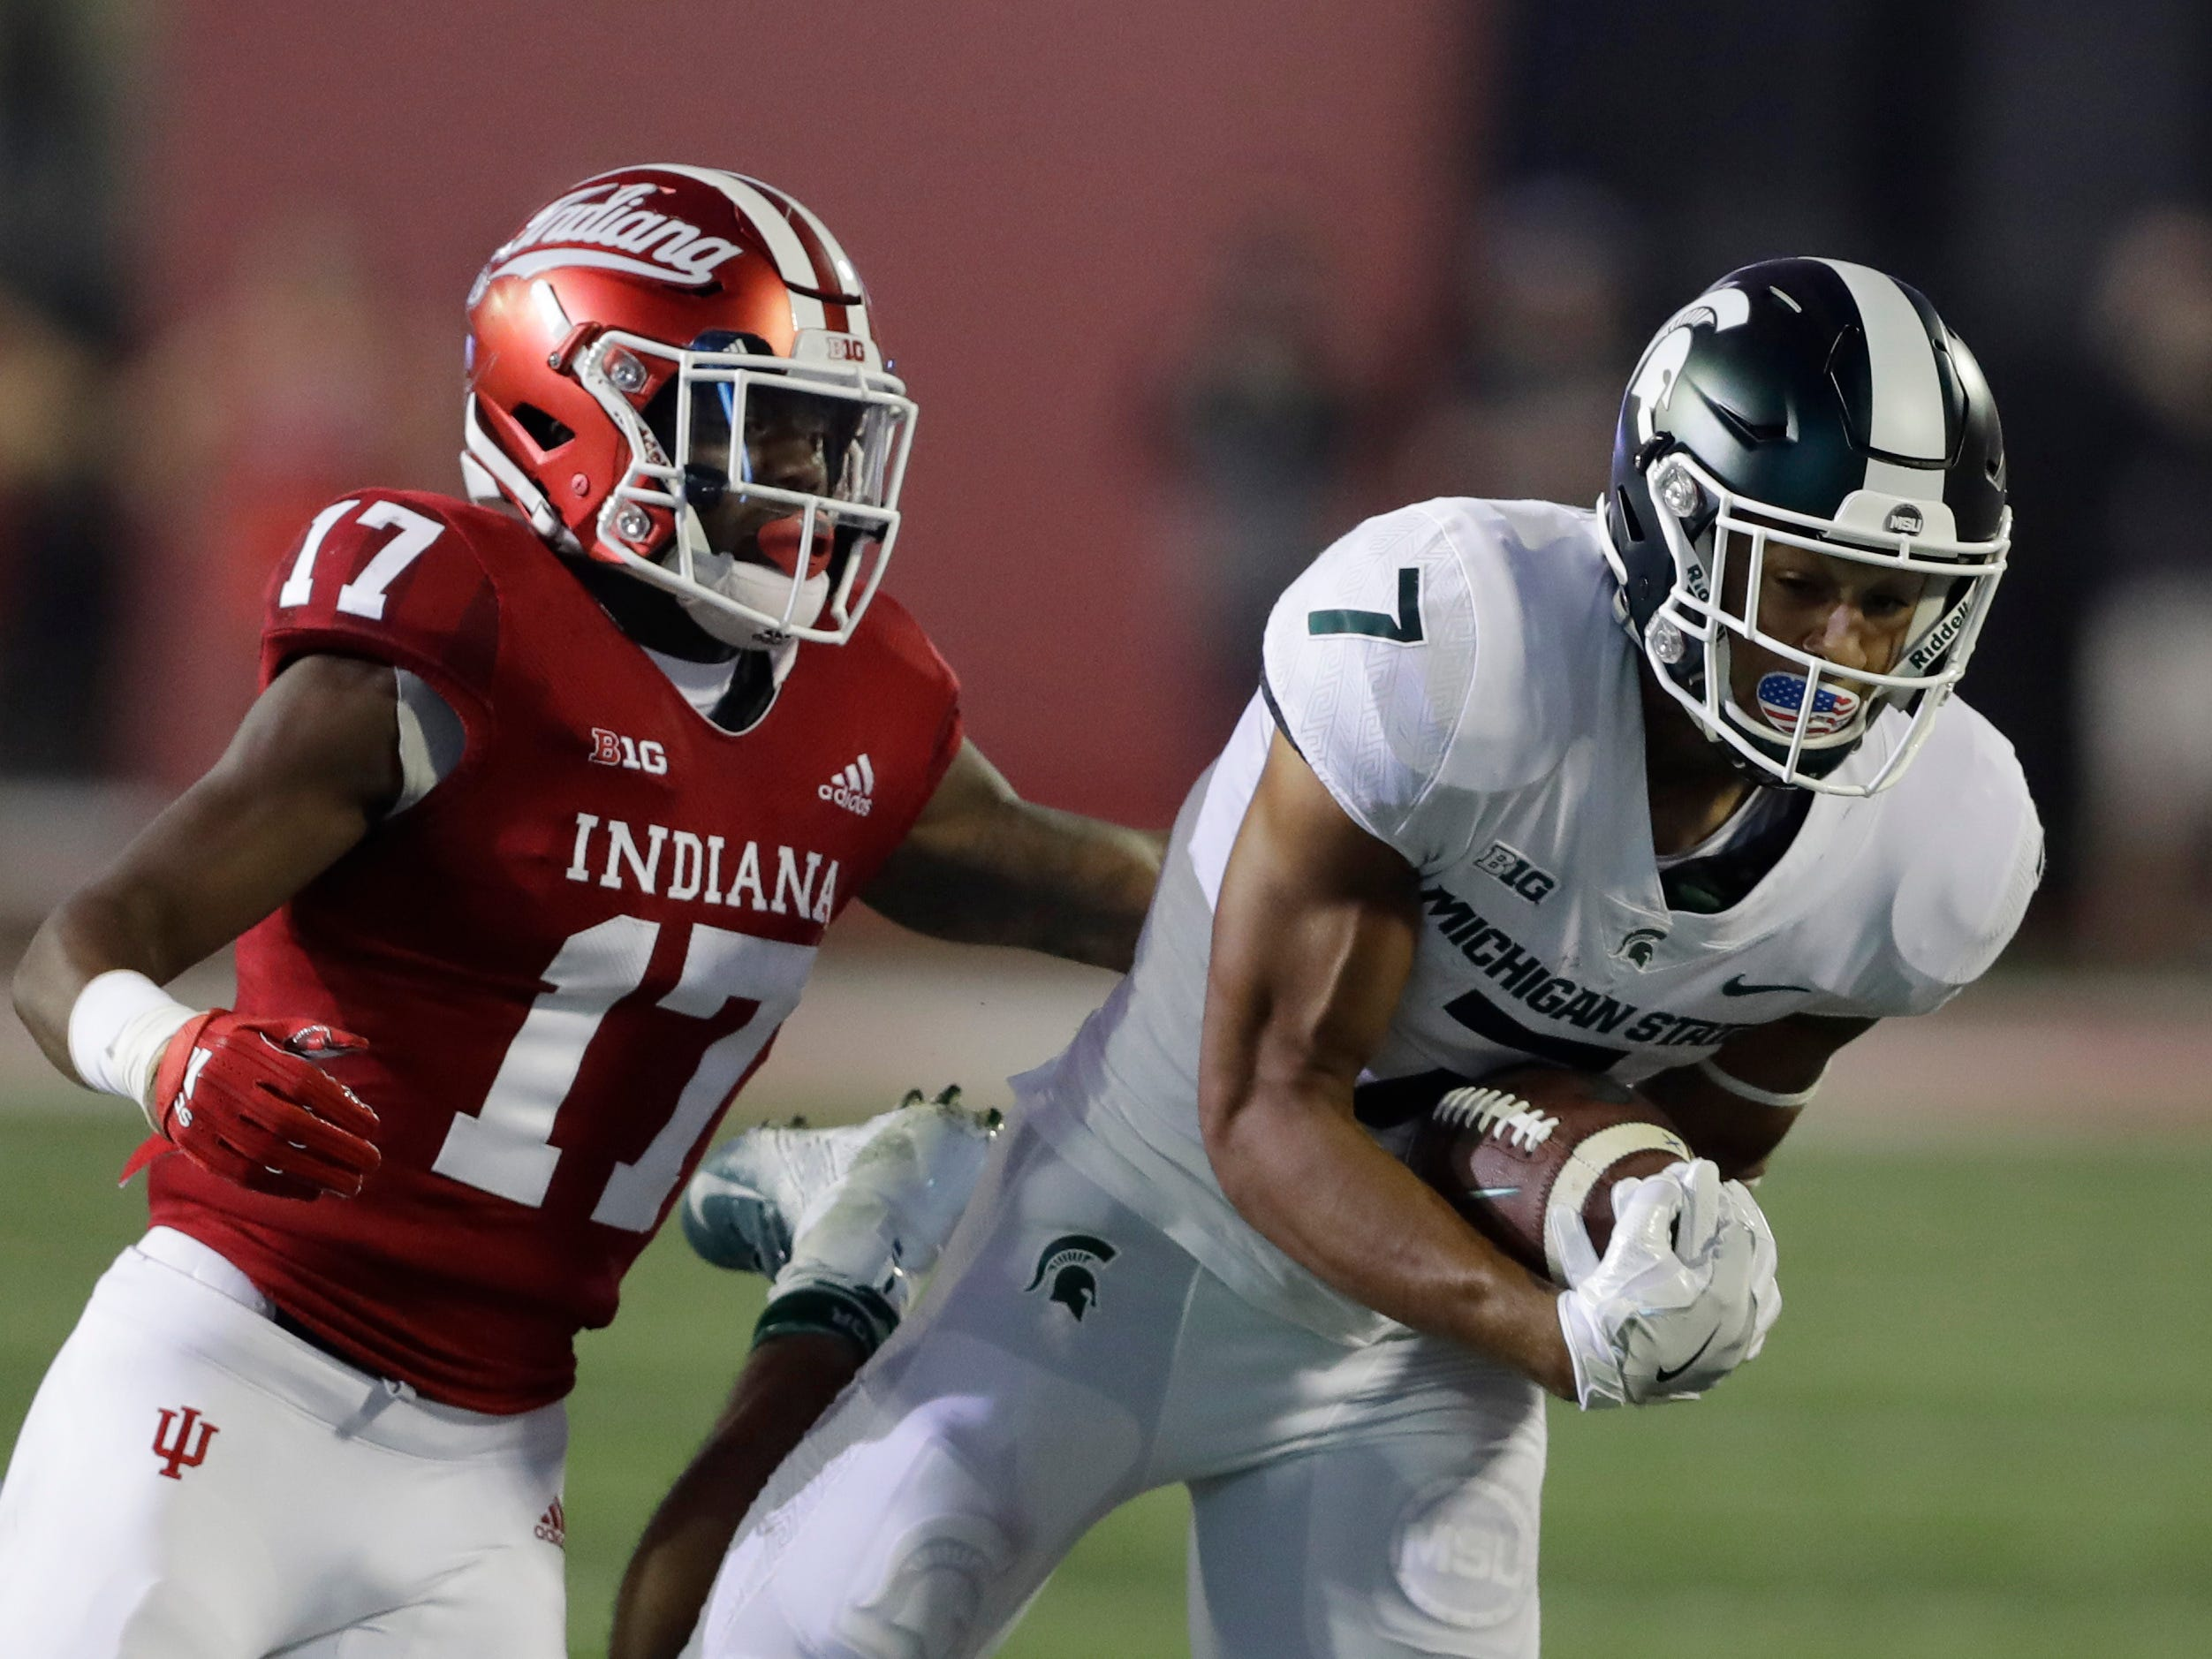 Michigan State wide receiver Cody White (7) makes a catch against Indiana's Raheem Layne during the first half of an NCAA college football game, Saturday, Sept. 22, 2018, in Bloomington, Ind.